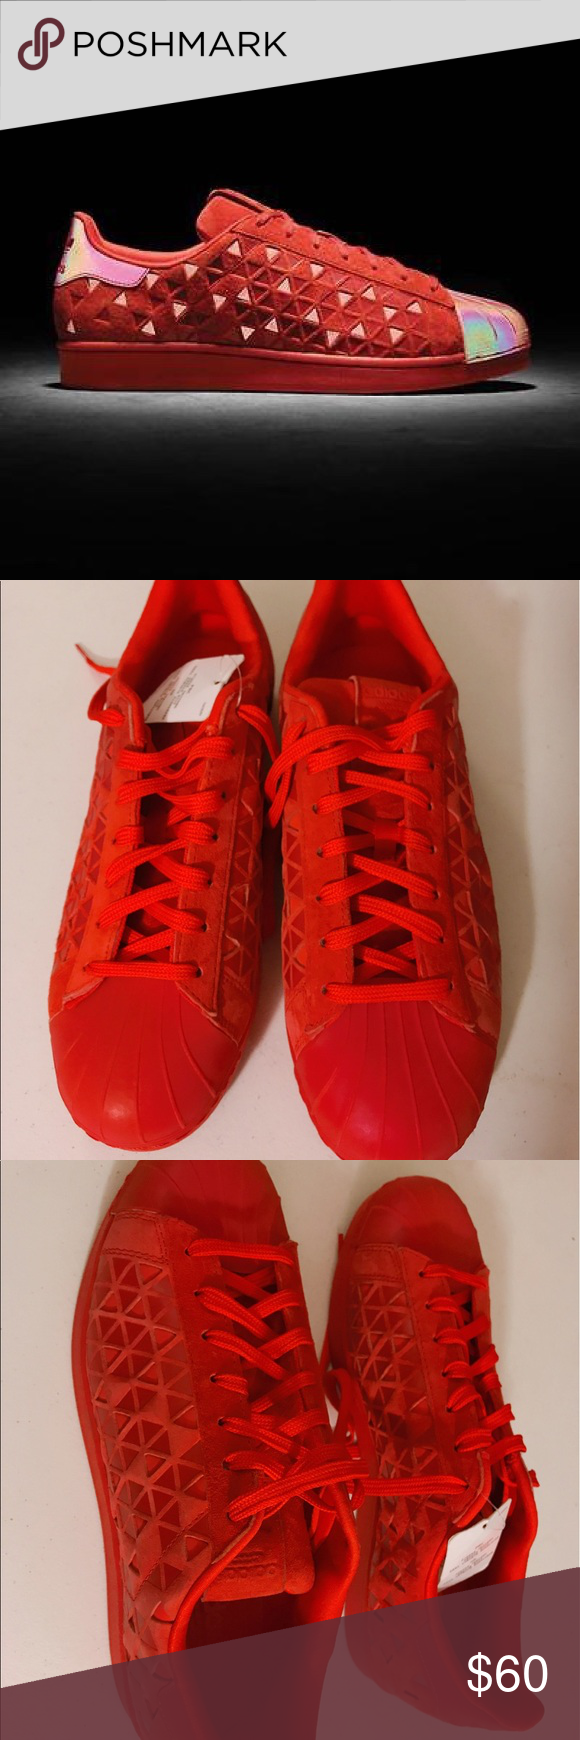 172fde300 NWT ADIDAS SUPERSTAR XENO RED REFLECTIVE -US 9 Men ADIDAS SUPERSTAR XENO  RED REFLECTIVE - Size US 9 Men. New with tags. Adidas Shoes Sneakers